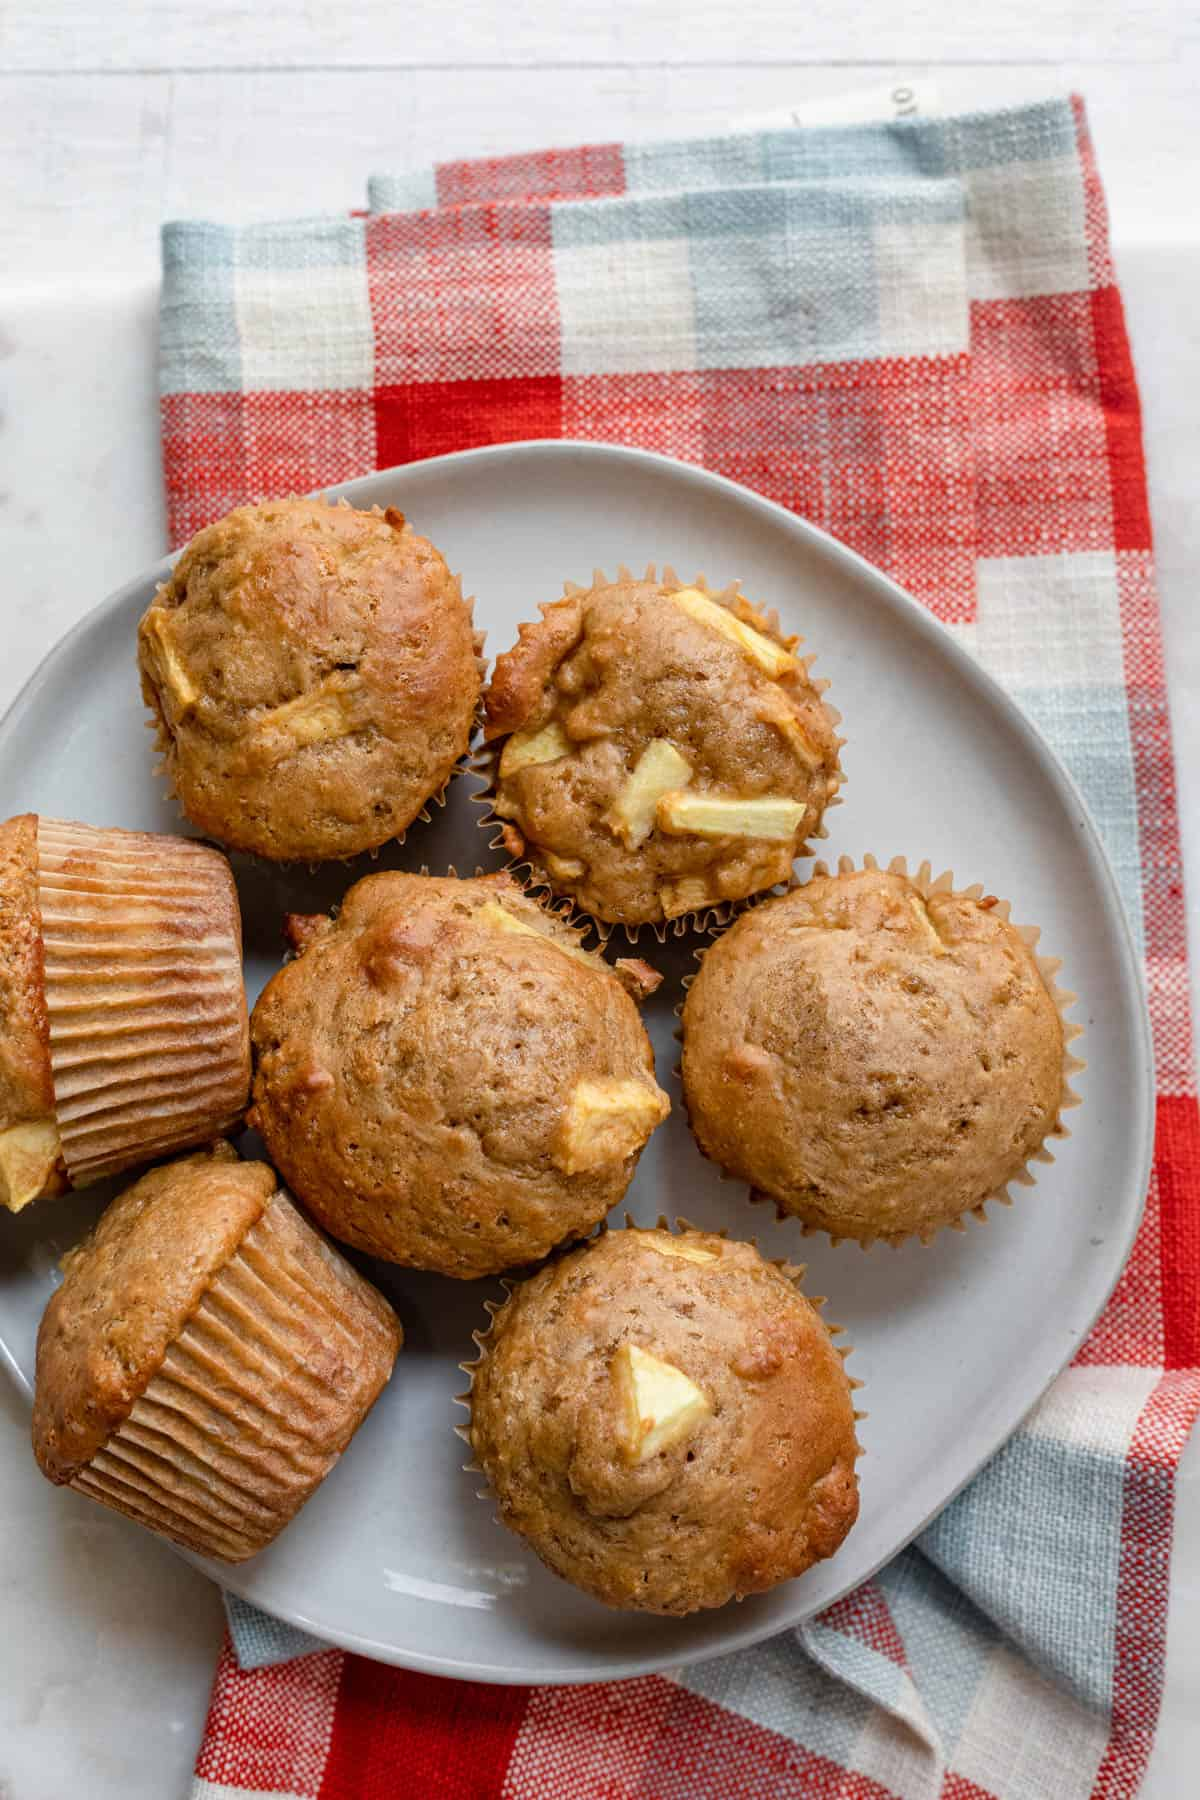 Apple cinnamon muffins on a plate with a red linen underneath